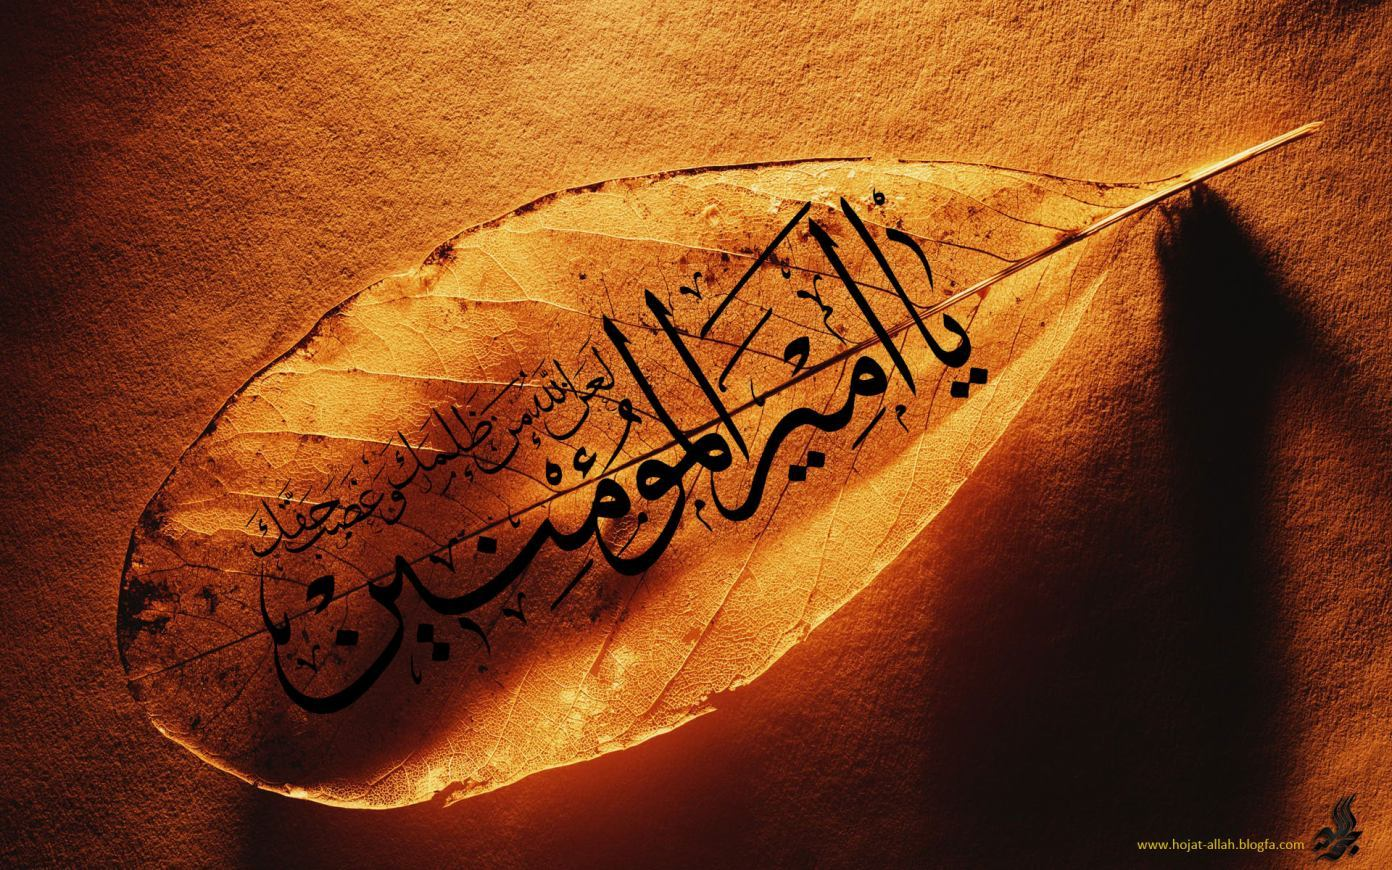 Islamic Pictures And Wallpapers Name Of Ali A S Wallpapers: Best Islamic Wallpapers